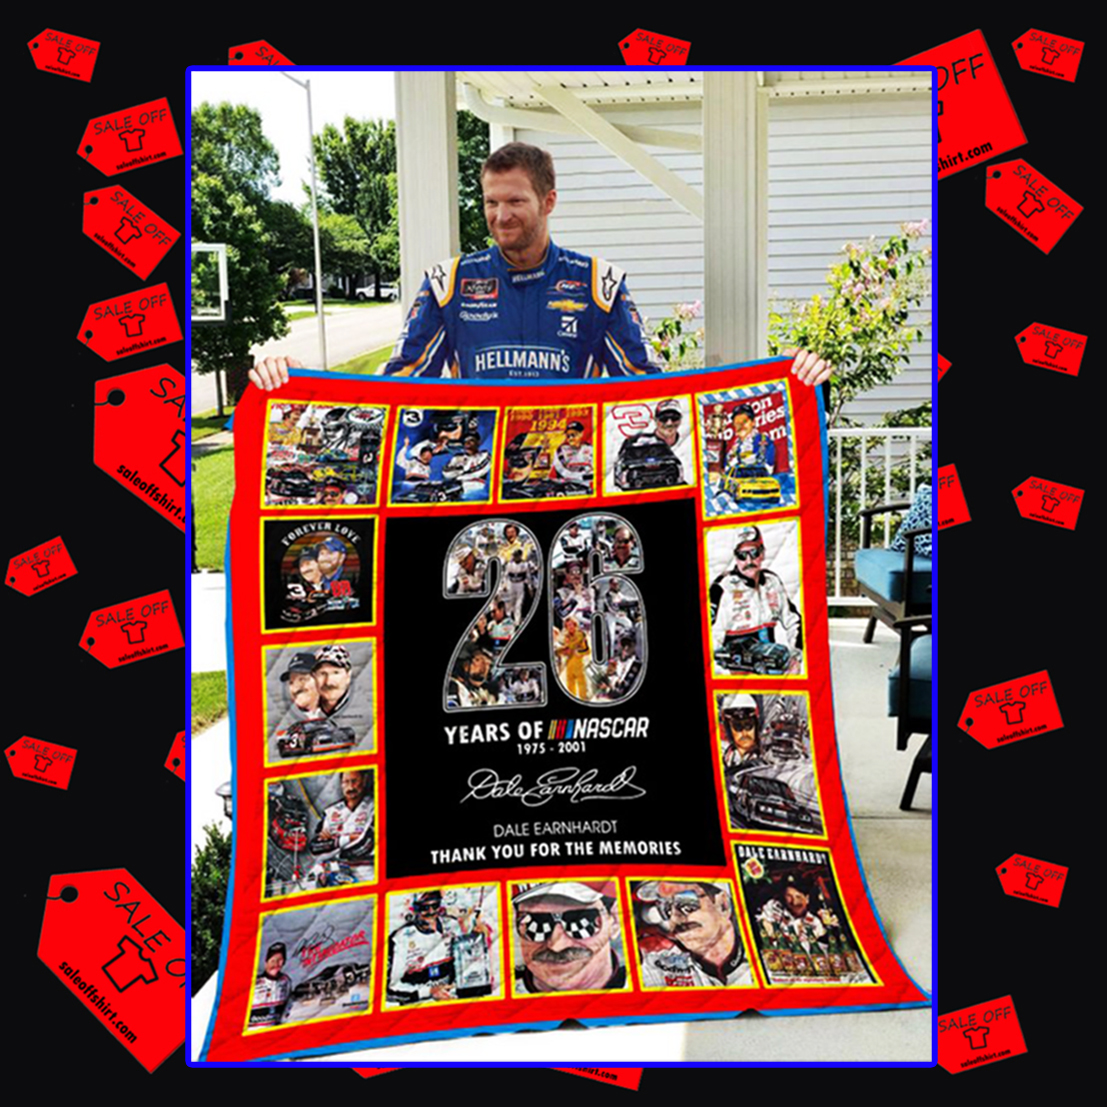 26 years of Nascar thank you for the memories quilt blanket - twin